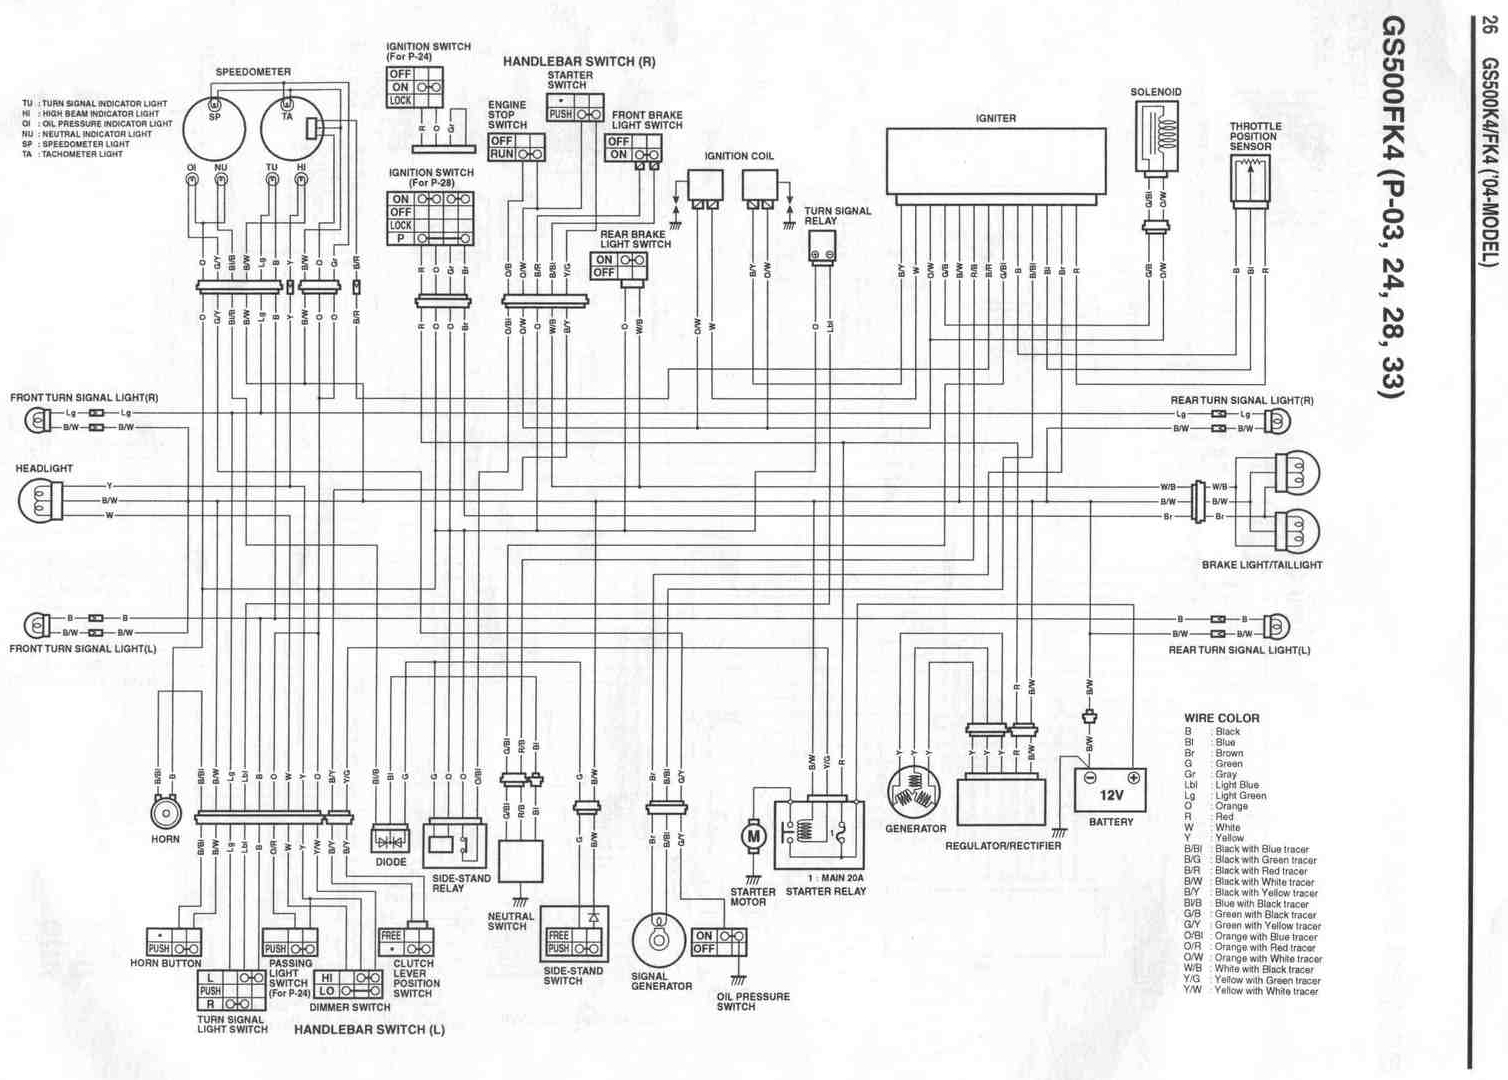 Suzuki_WiringDiagram_04 wire diagram gs500f 06 Ford Starter Relay Wiring Diagram at readyjetset.co